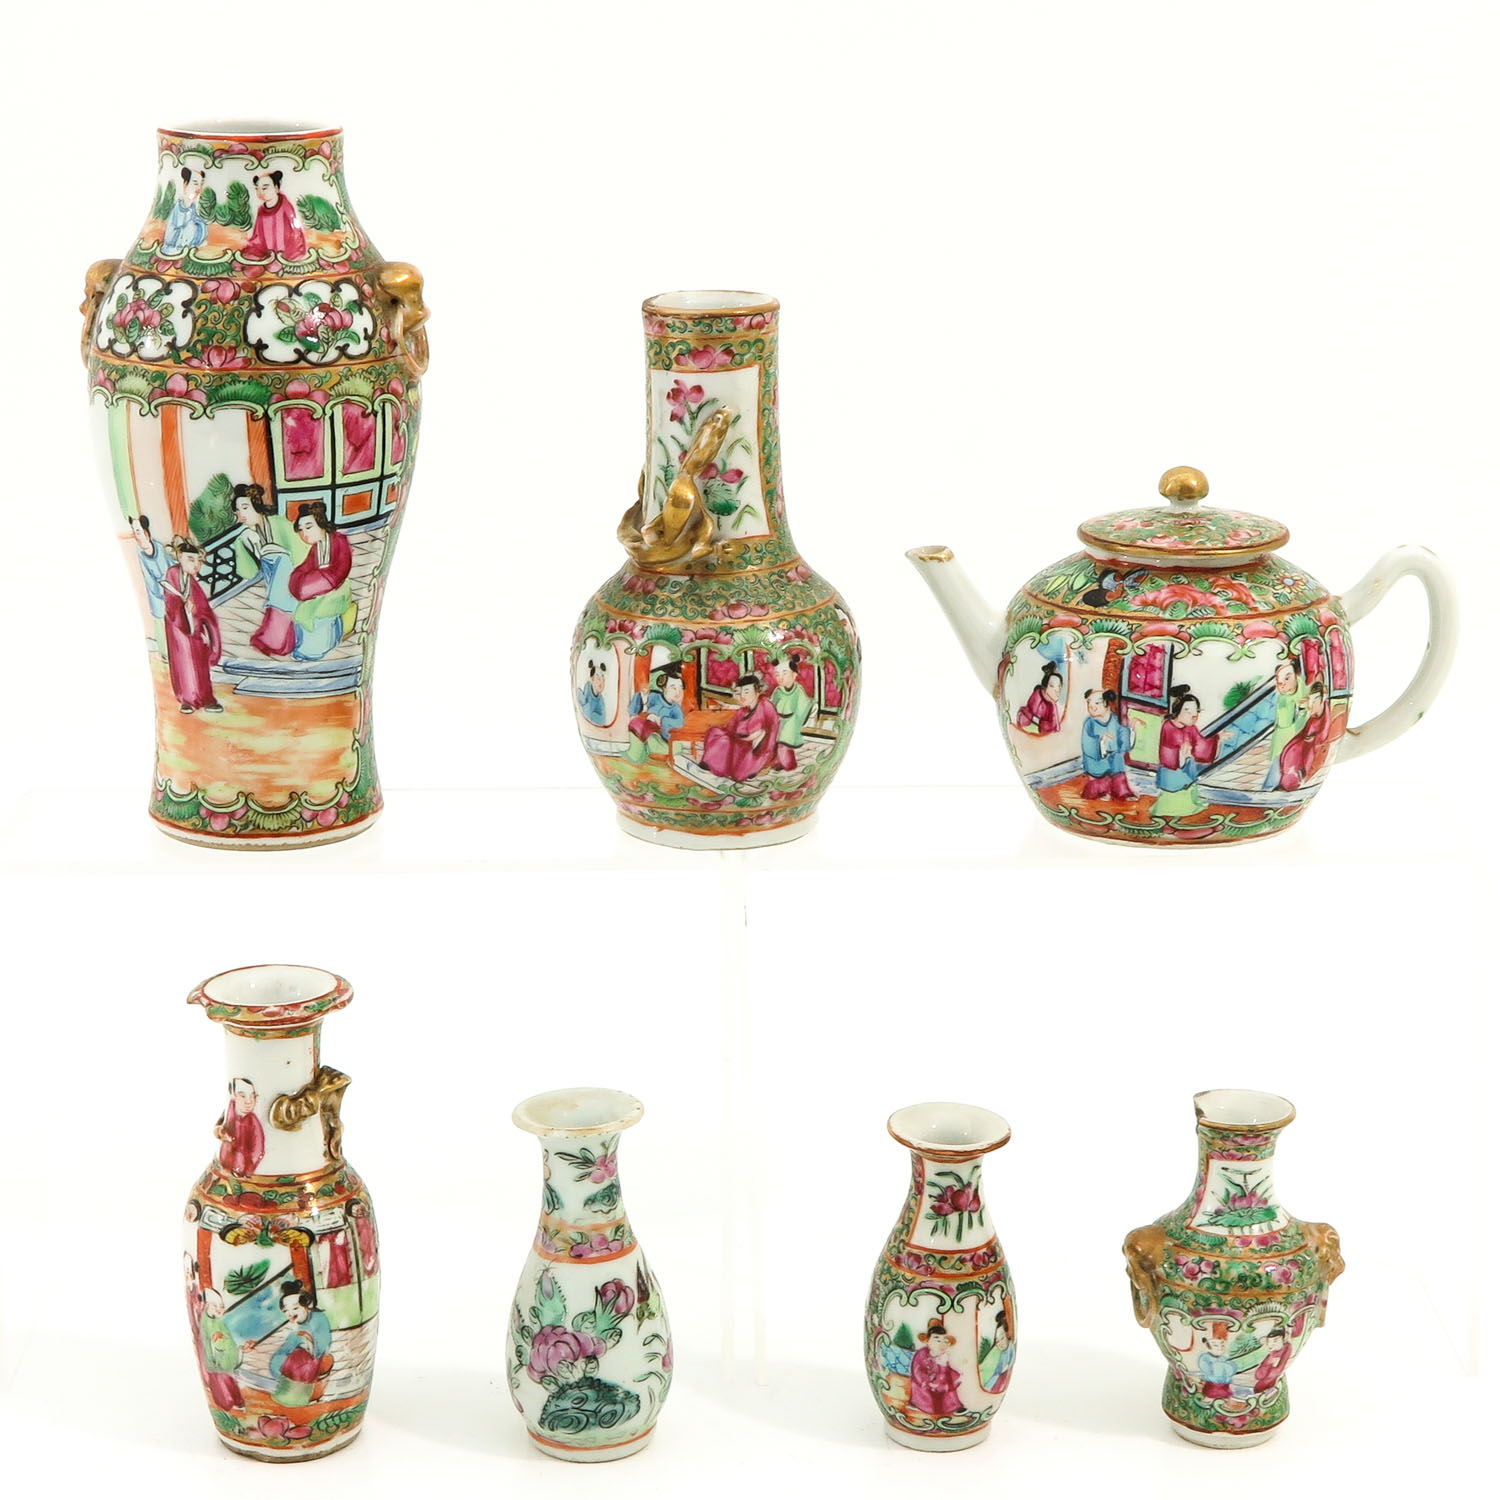 A Diverse Collection of Porcelain